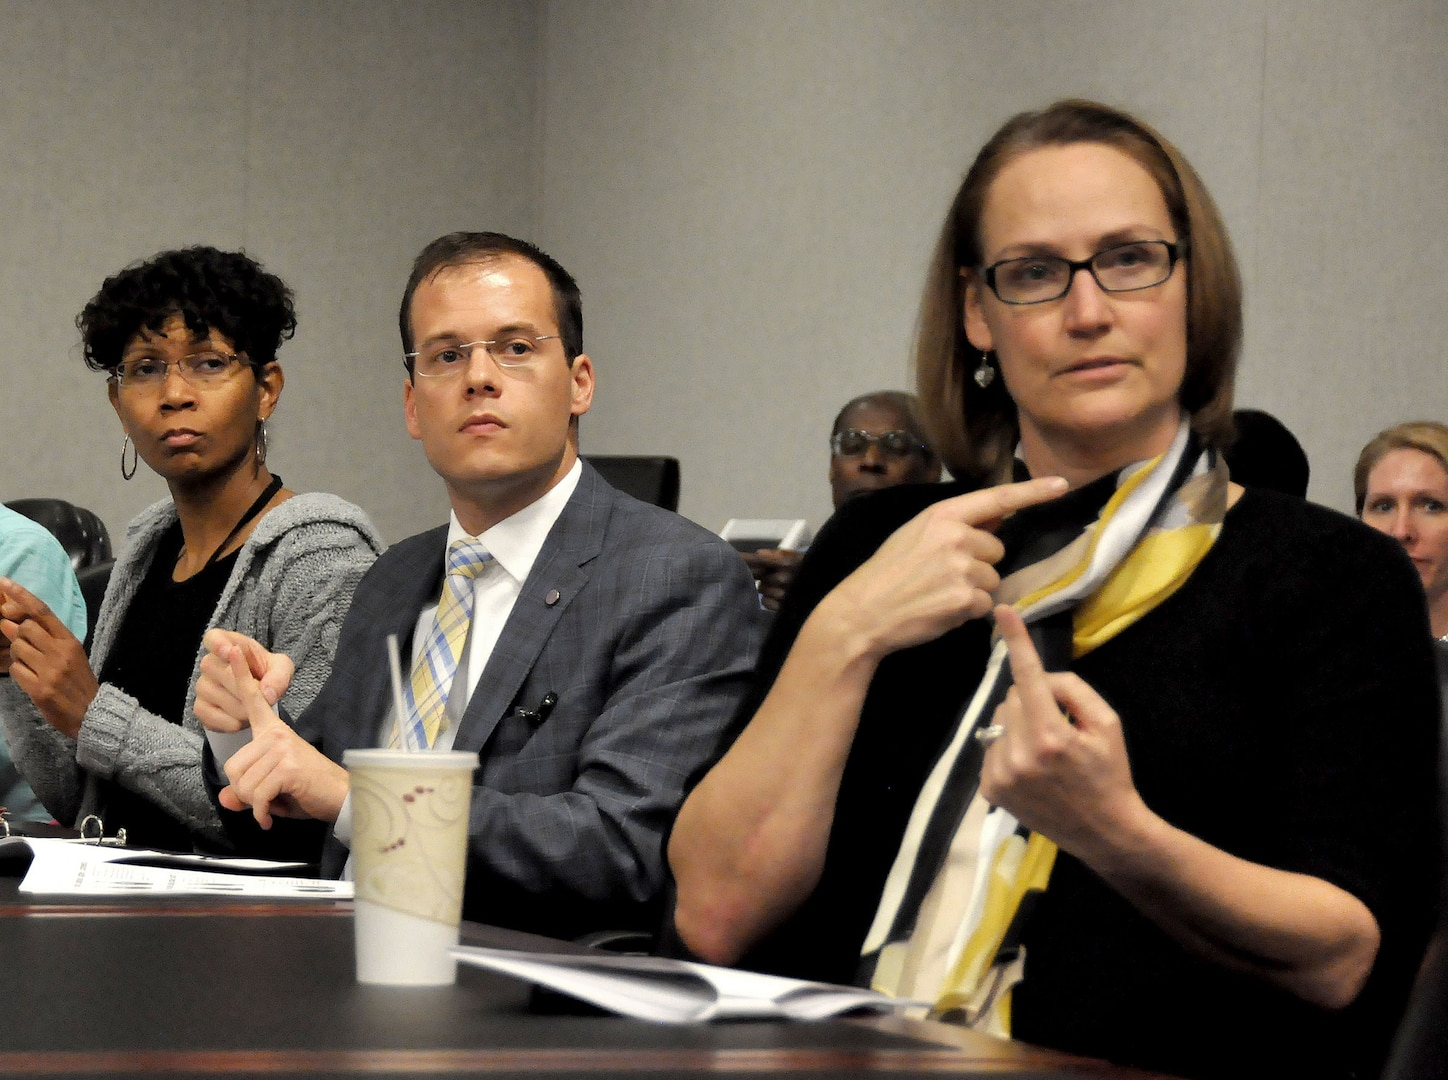 From left, Towana Barnett, Defense Technical Information Center, Christopher Kehoe, DLA Equal Employment Opportunity Office and Janice Sypolt, DLA Logistics Operations, participate in the DLA lunchtime American Sign Language class.